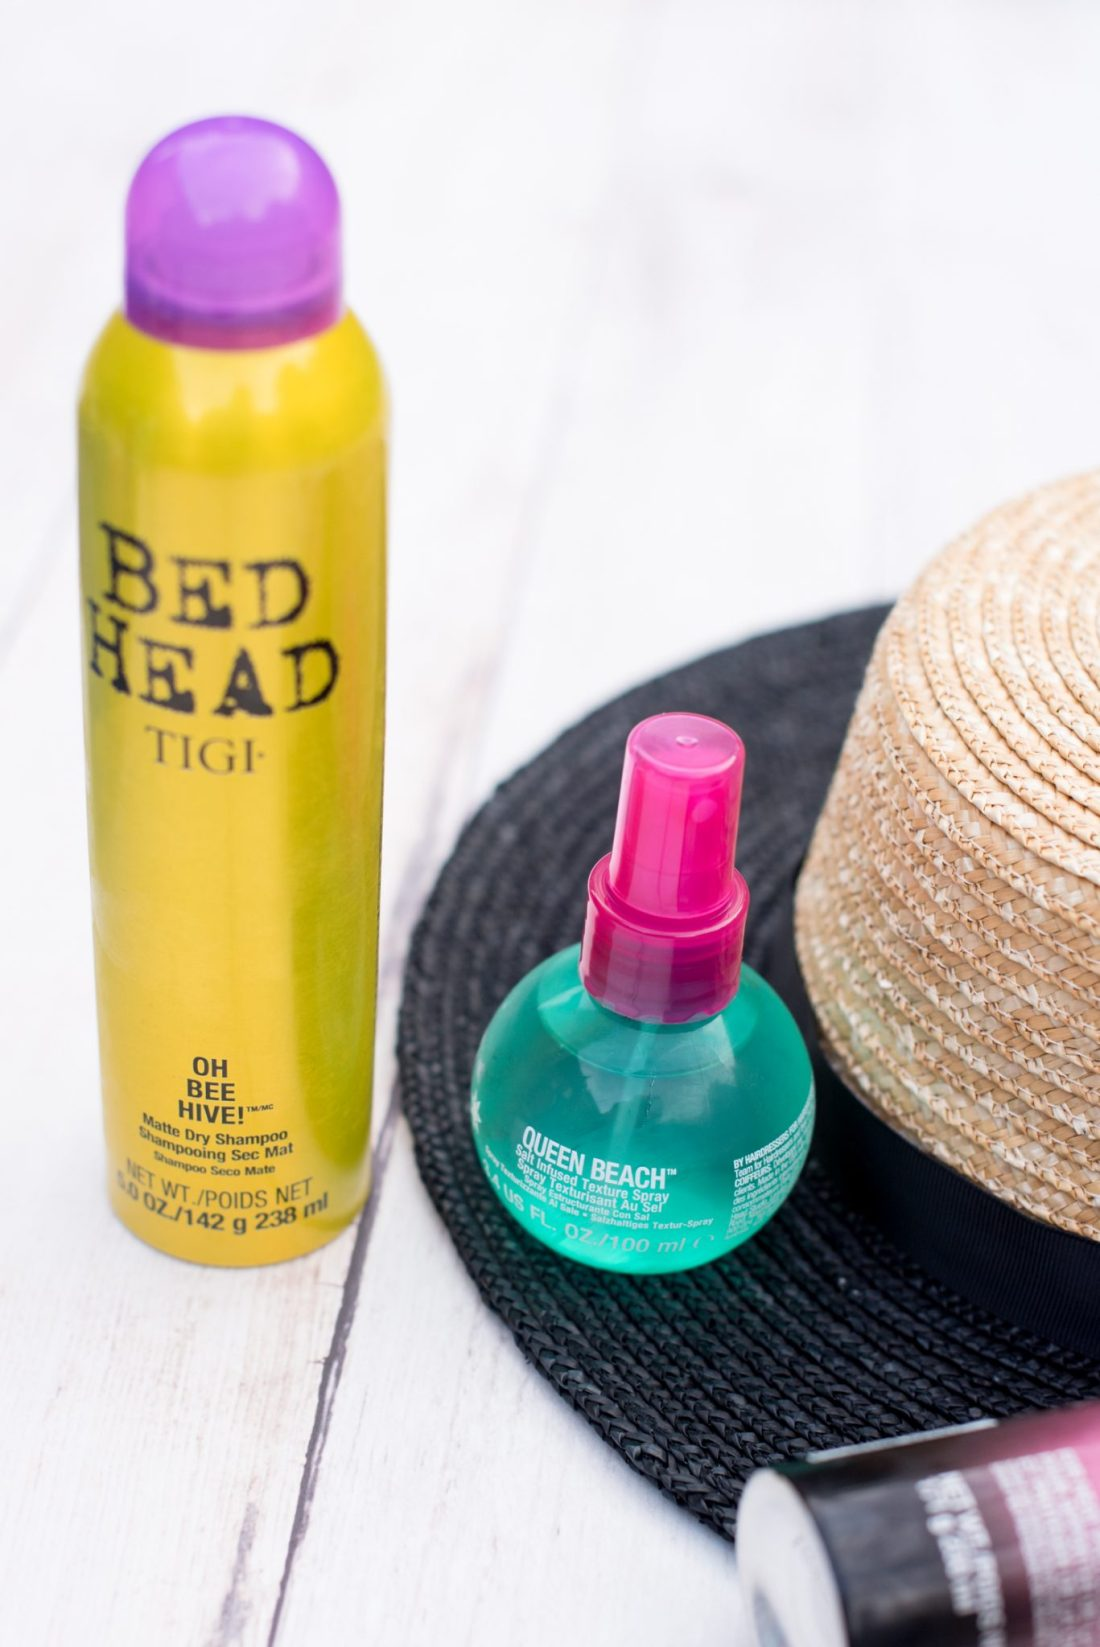 Festival Ready with Bed Head by TIGI // Miss Molly Moon